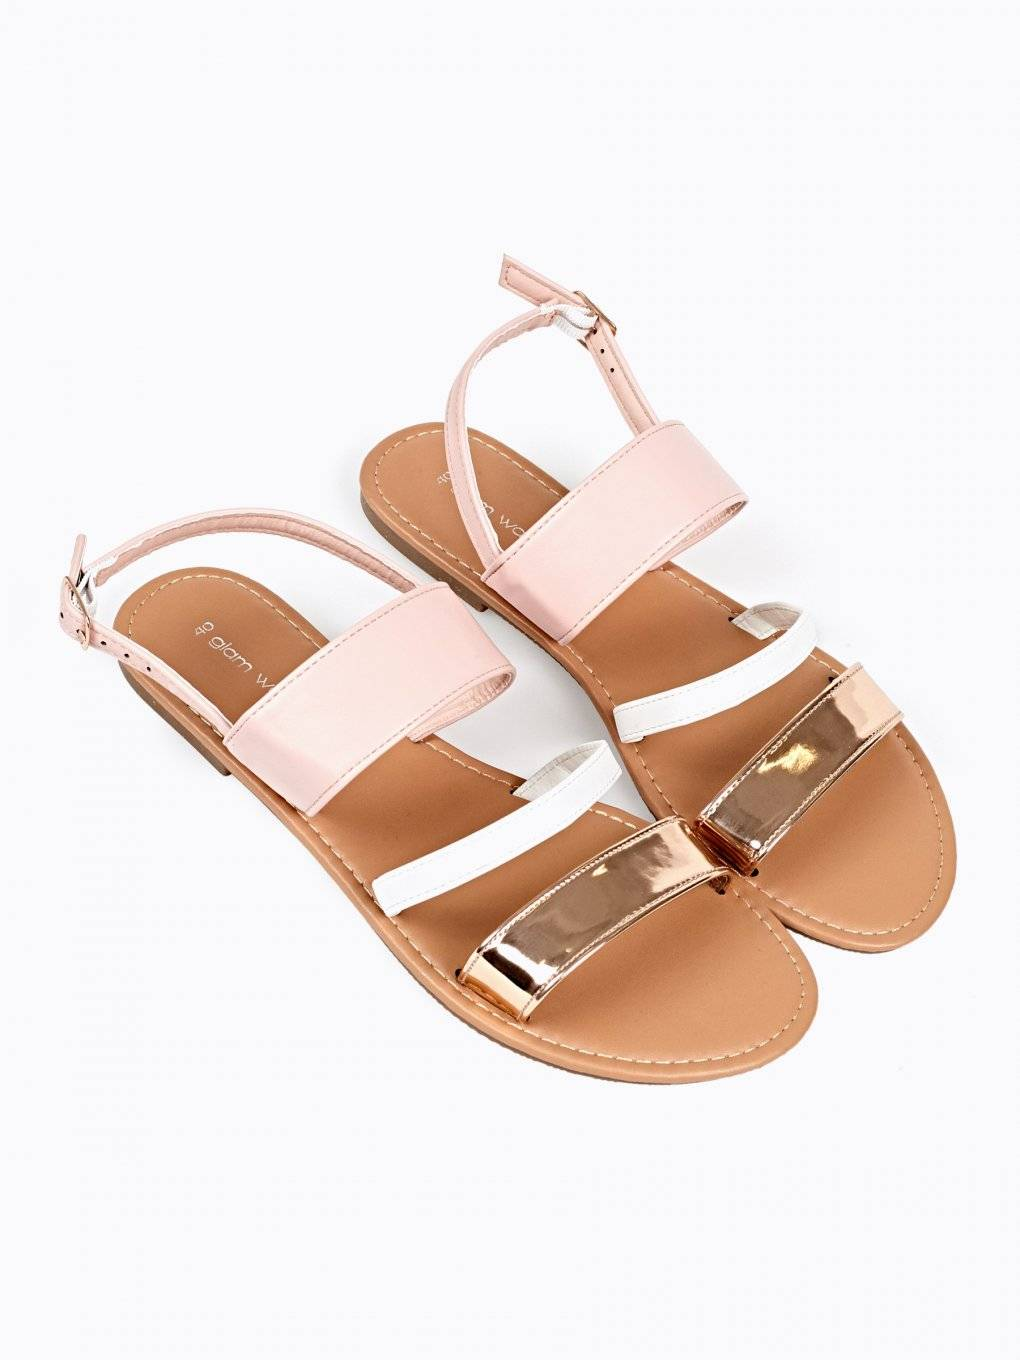 SANDALS WITH METALLIC DETAIL